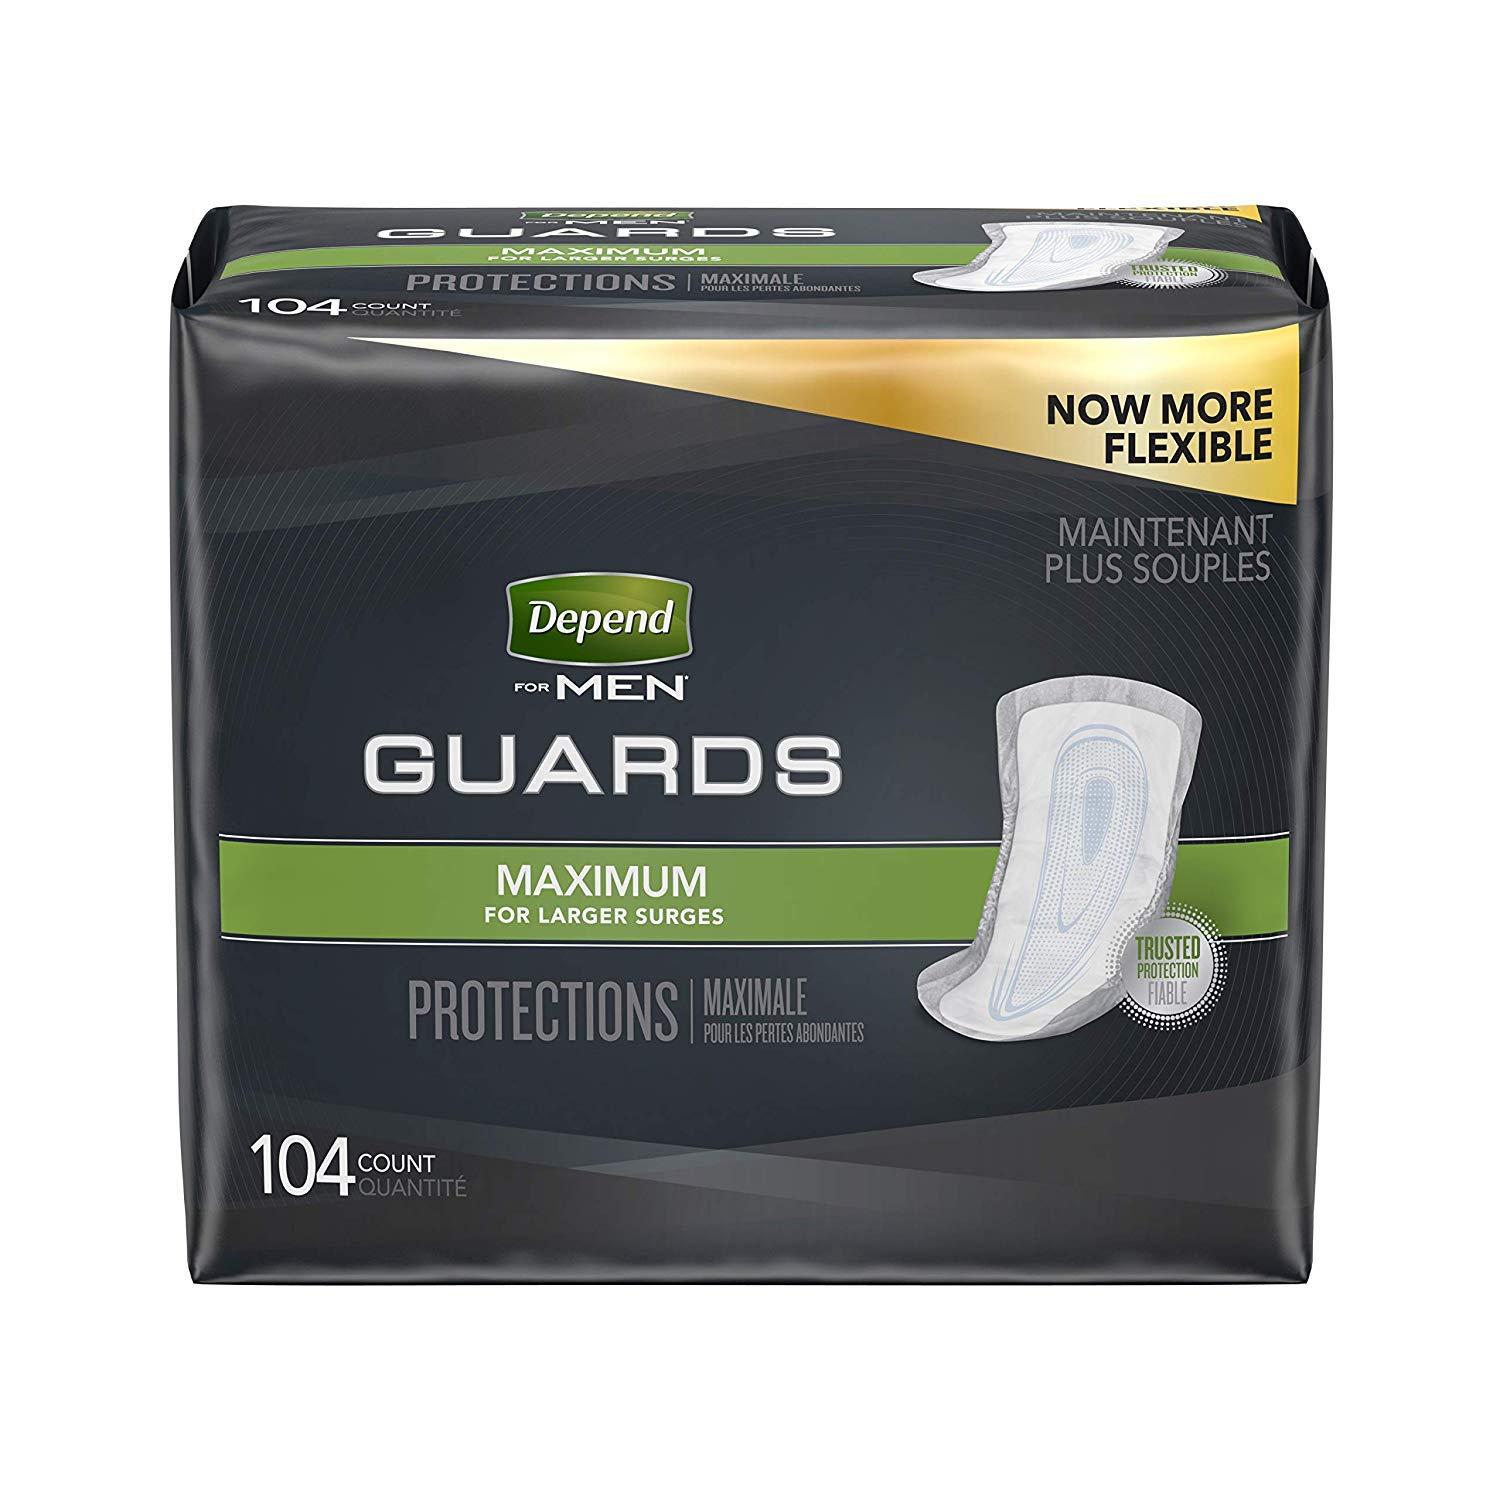 Depend Incontinence Guards for Men, Maximum Absorbency, 2 Packs of 52, 104 Total Count (Packaging May Vary) (2 Case (104 ct))